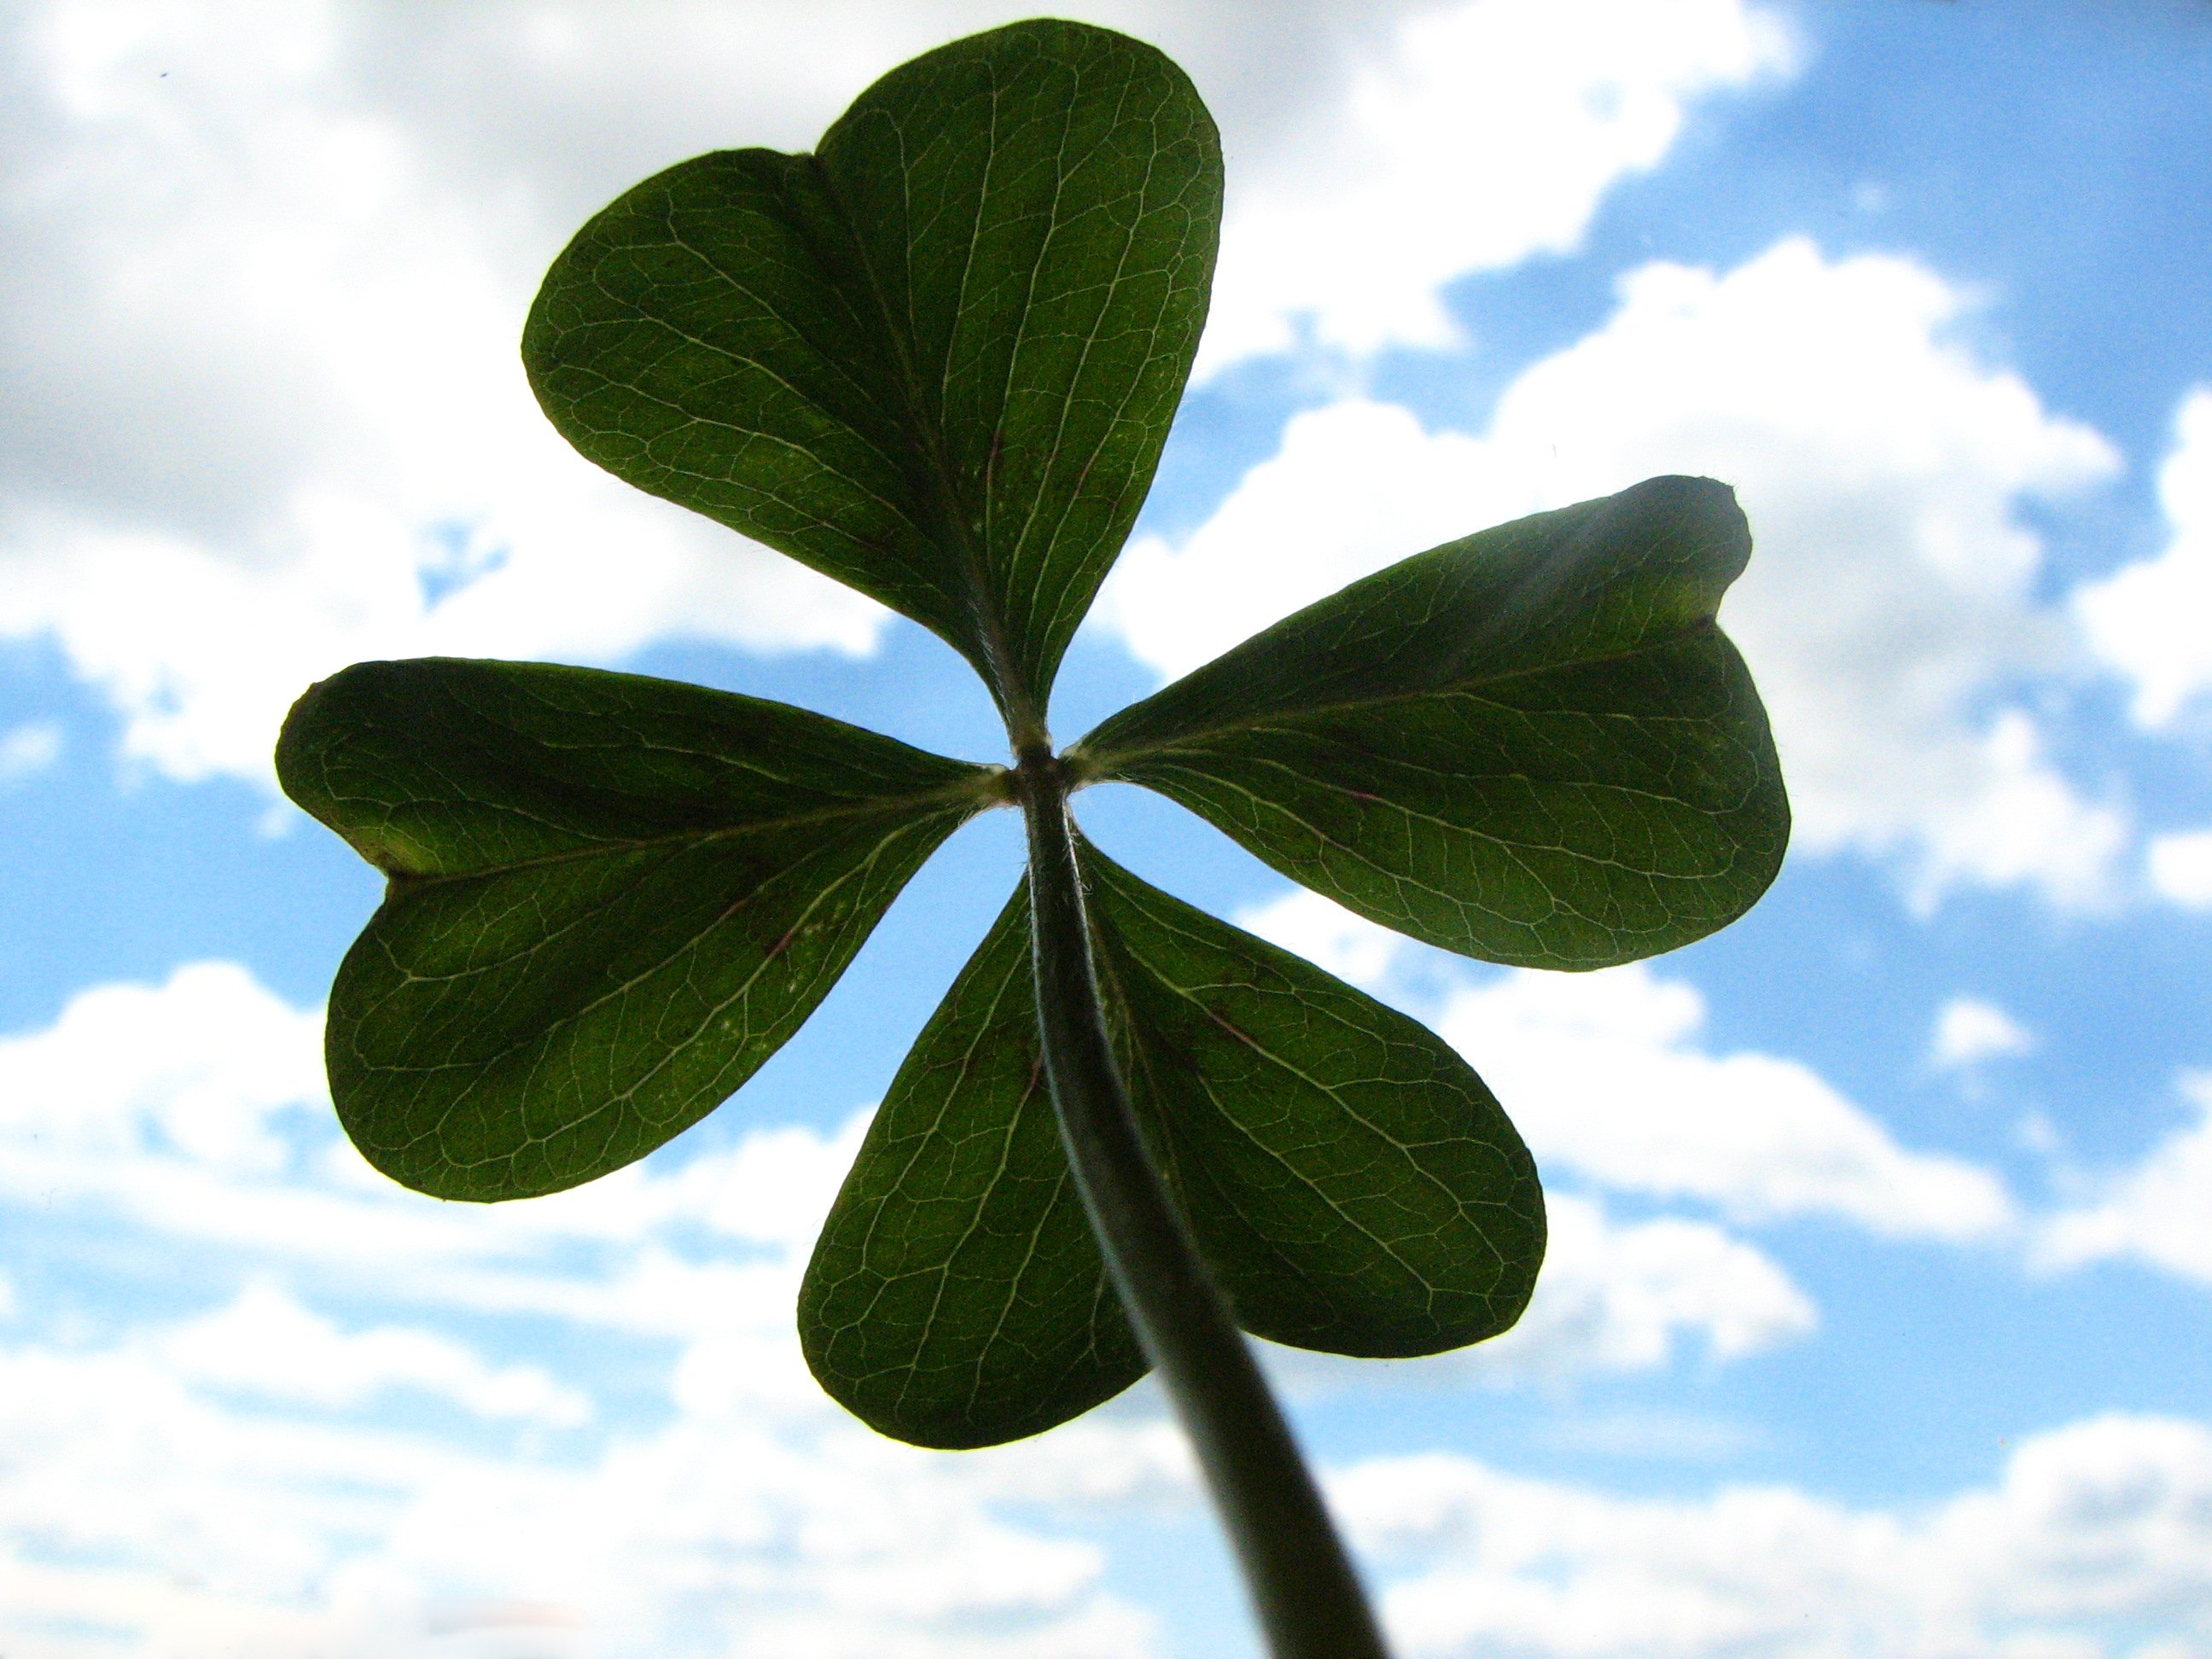 212 The Clover Four leaf Flower Images 2592x1944